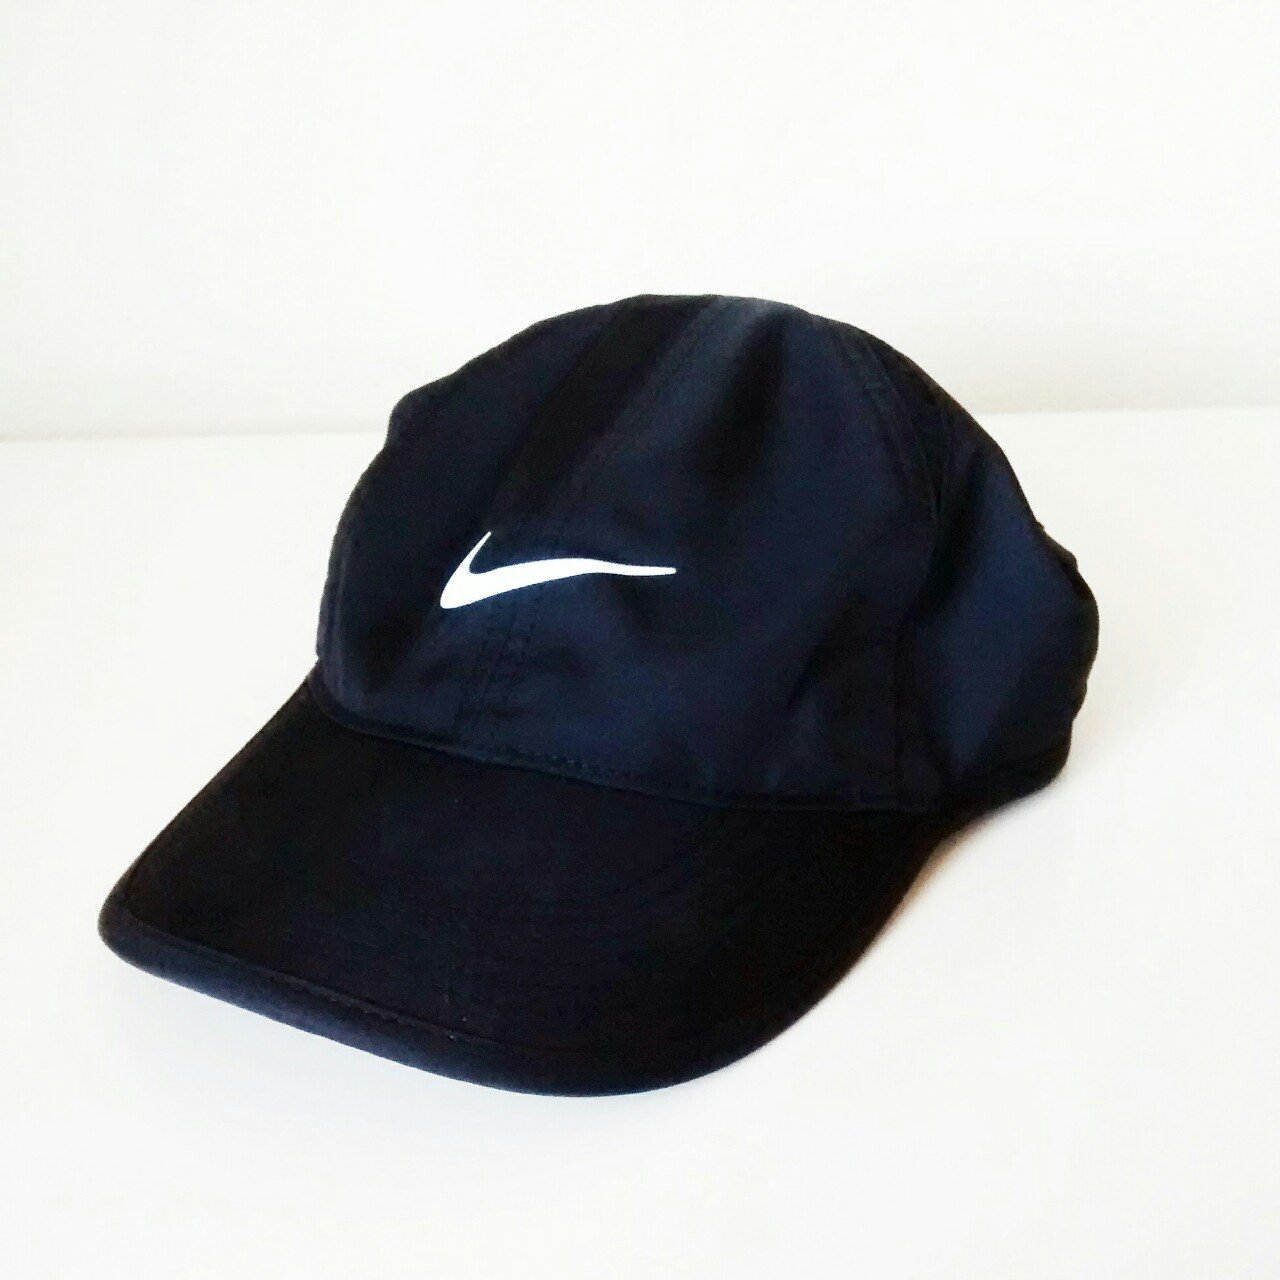 Nike dri-fit cap. Brand new never worn. Free gift with   cap - Depop bb19071042c